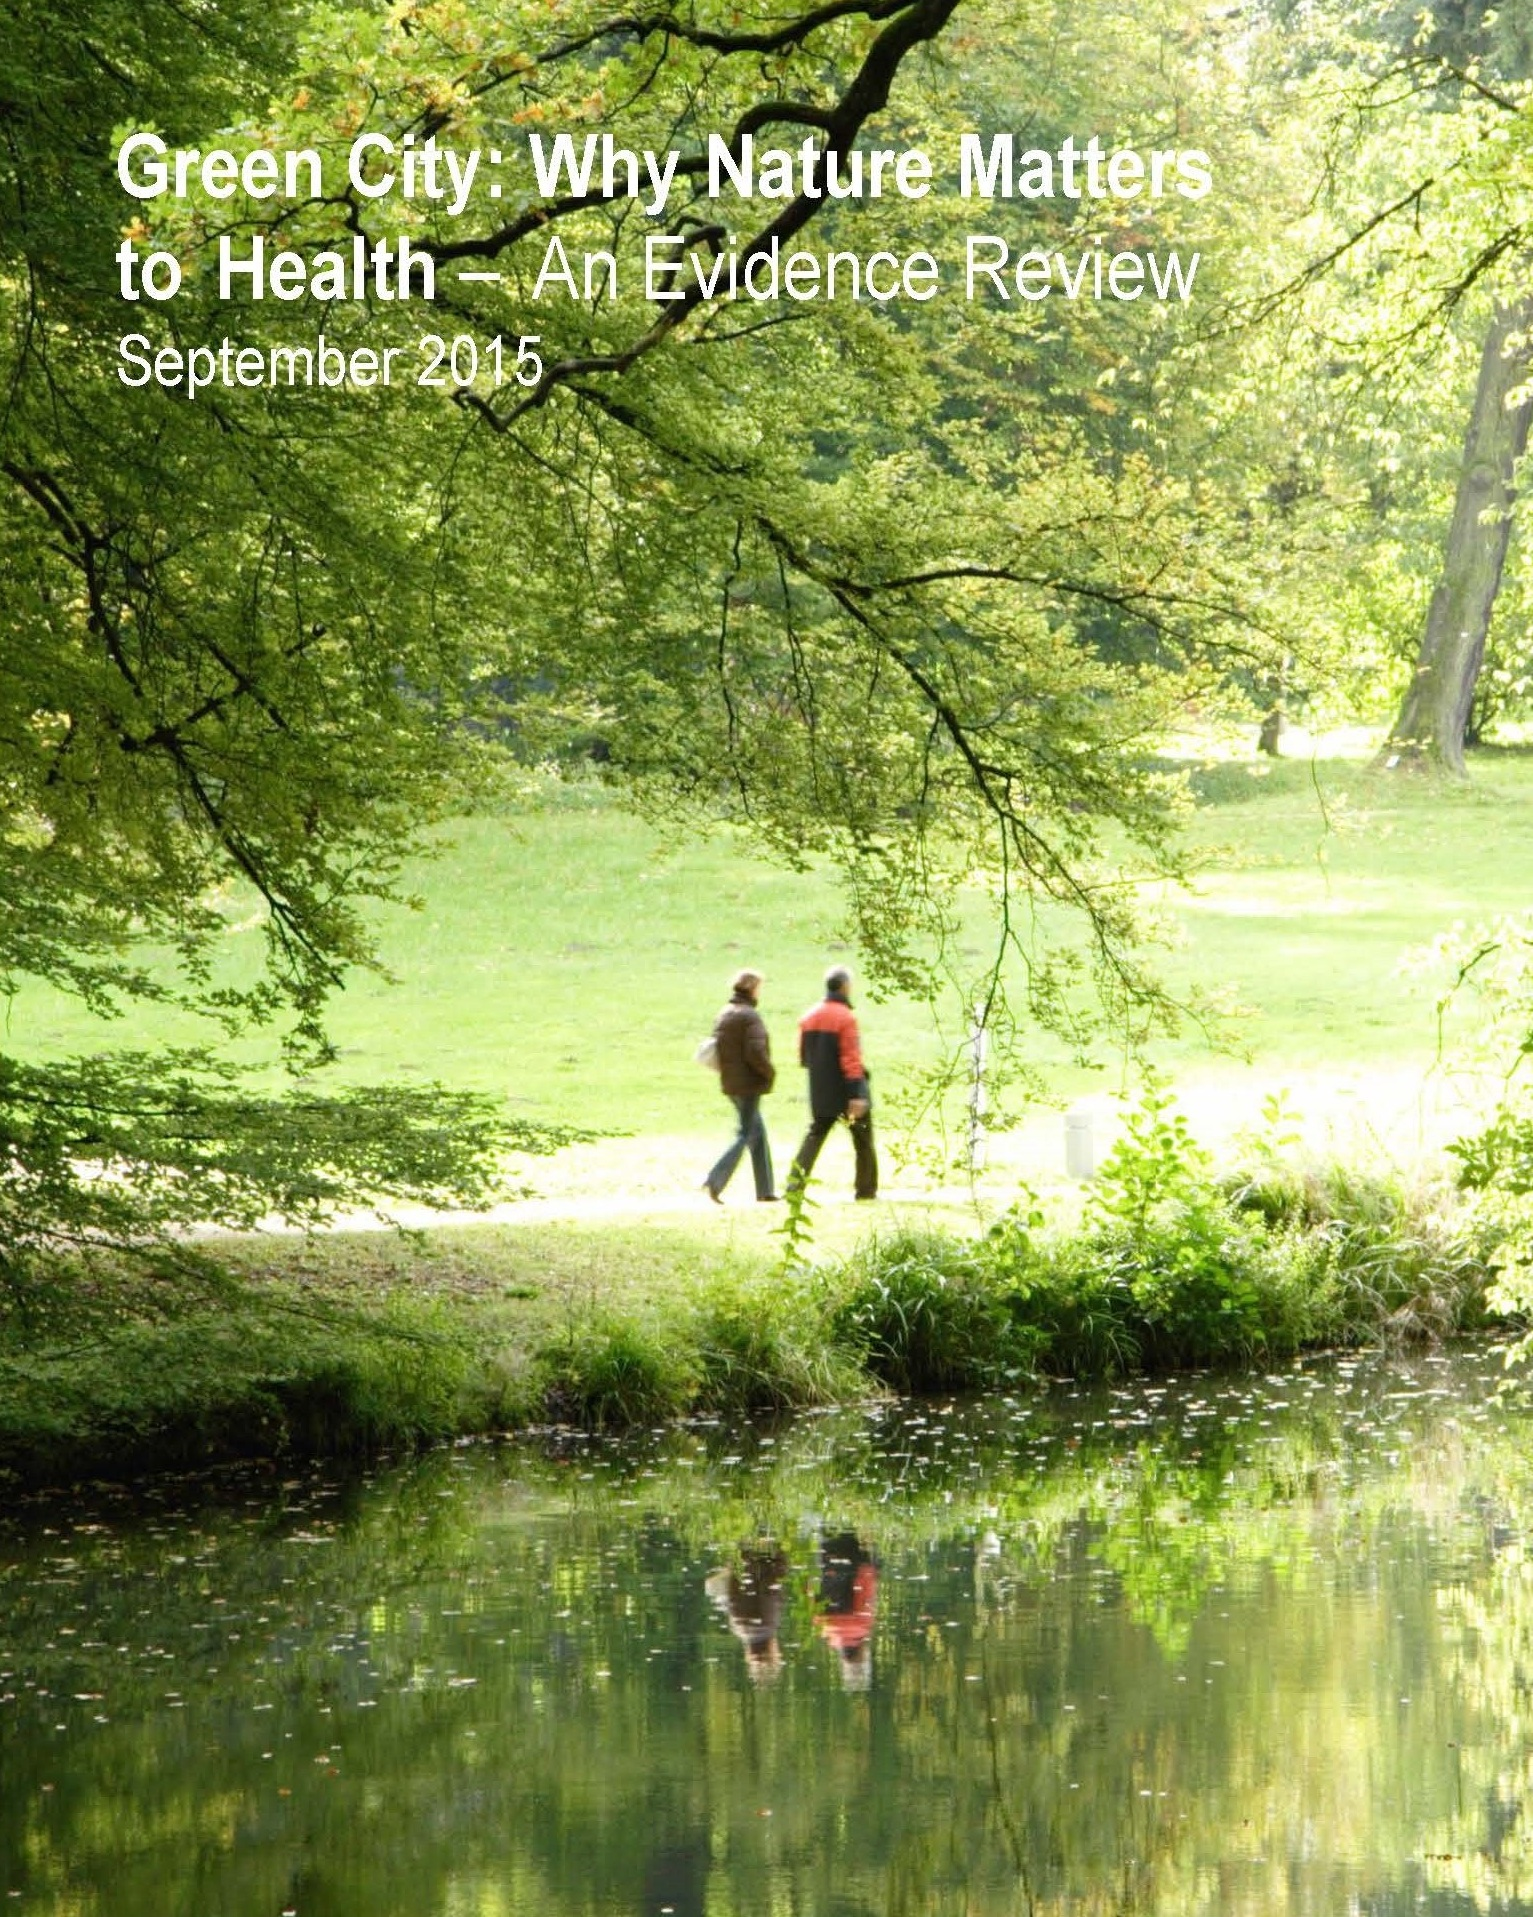 Green City: Why Nature Matters to Health - The value of green space in urban areas has been recognized throughout human history. Access to safe, well maintained, natural settings in an urban environment promotes health and wellbeing through many pathways. Some of these include, increases in the rate of physical activity, fostering social connections, and reducing stress. This report, published by Toronto Public Health, describes the impact of different exposures to urban green space on physical health, mental health and wellbeing, along with the green space types and characteristics that offer the most benefit to health.